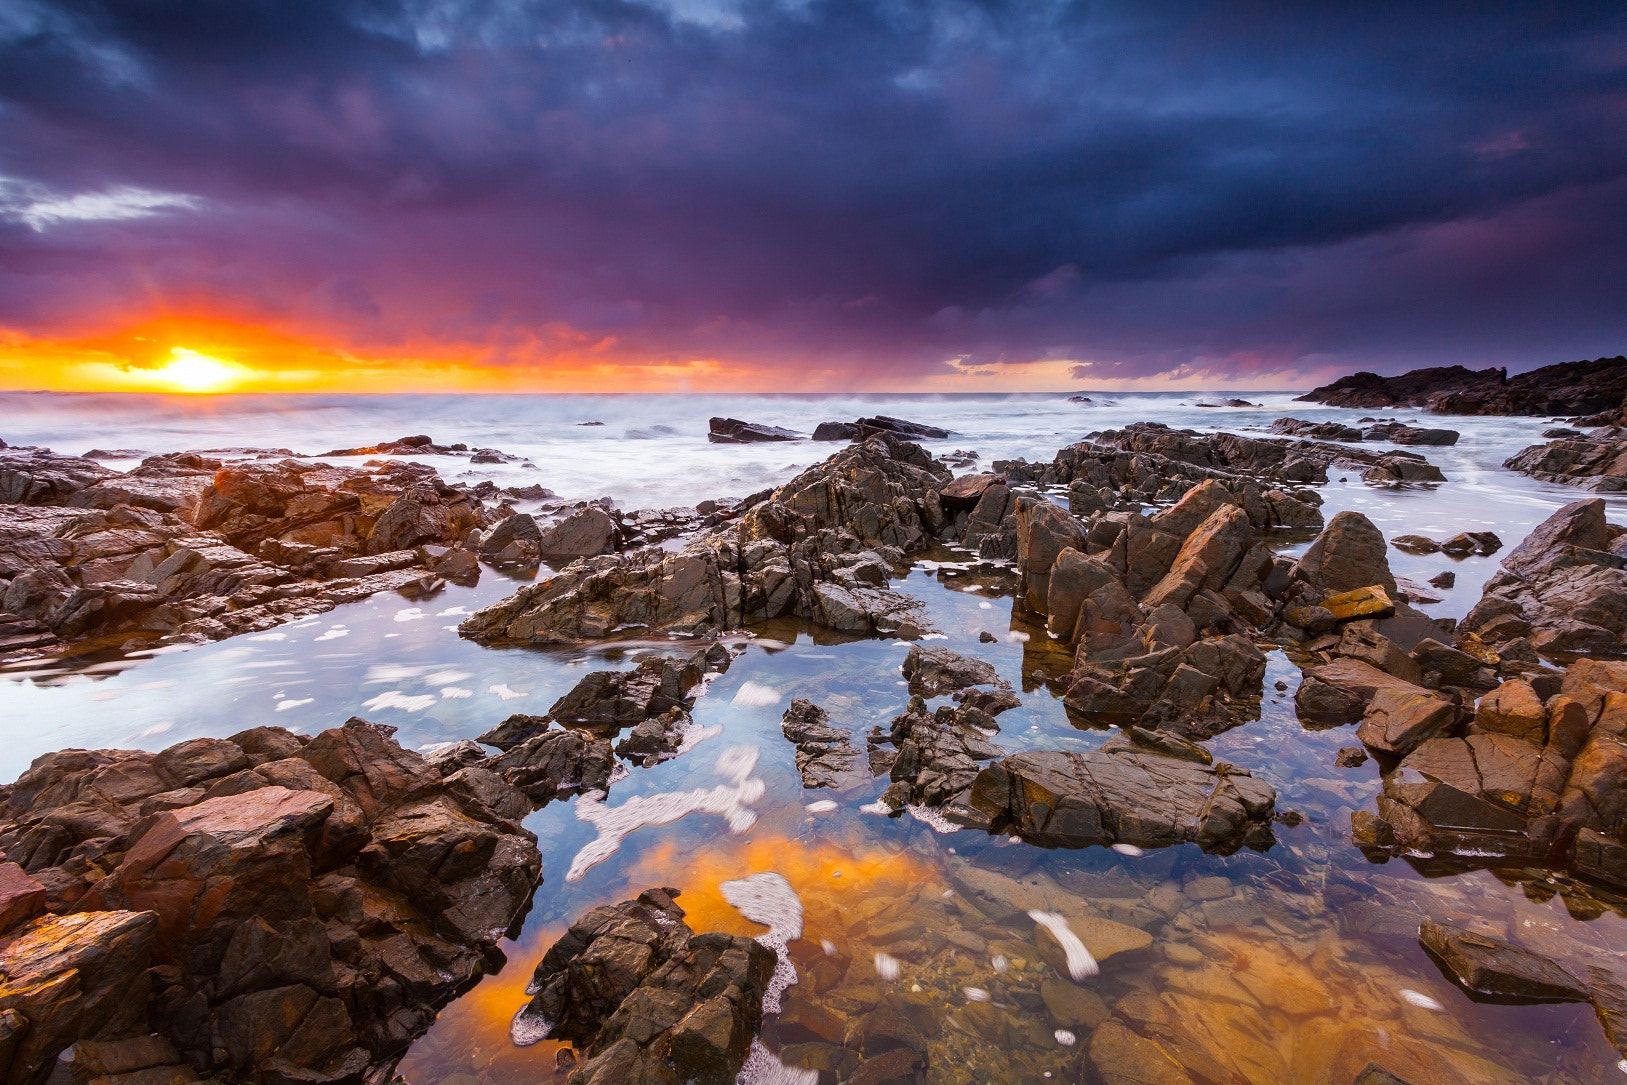 Photograph Sunrise Reflections by James McGregor on 500px